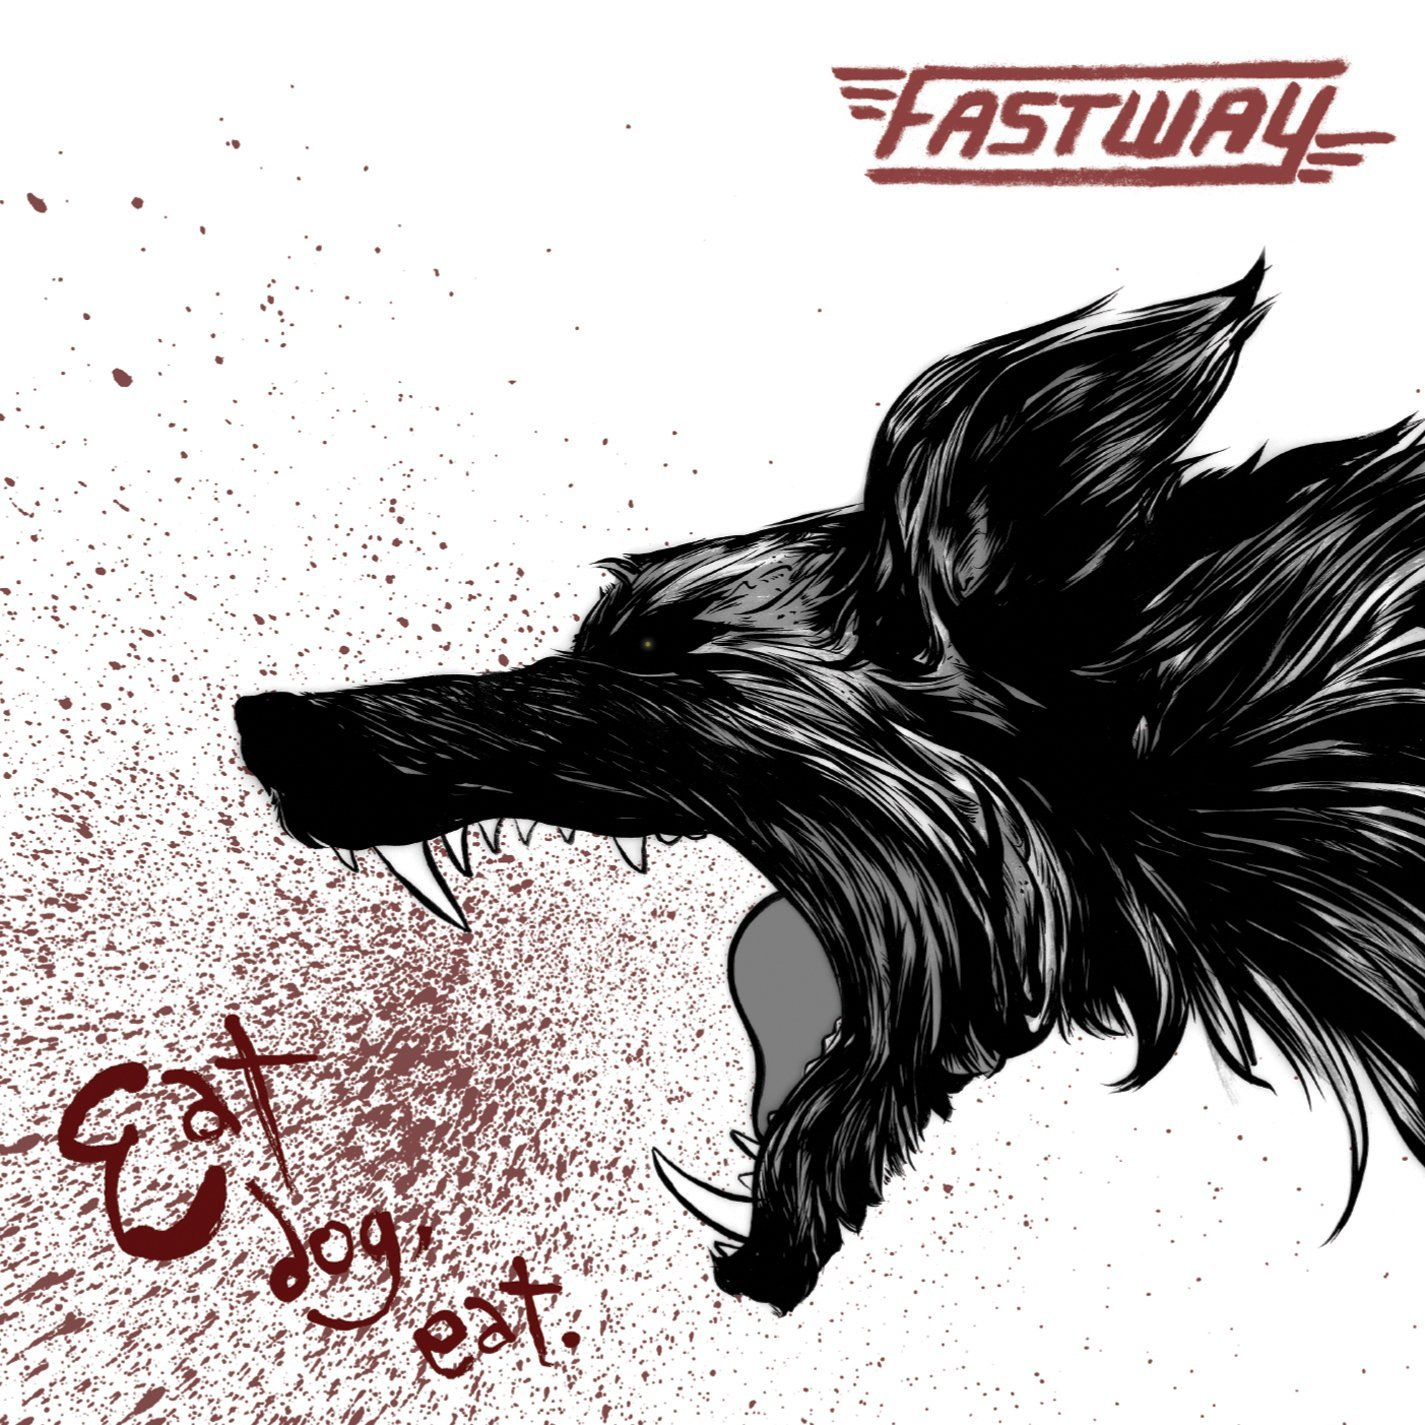 Fastway – Eat Dog Eat – Album Review